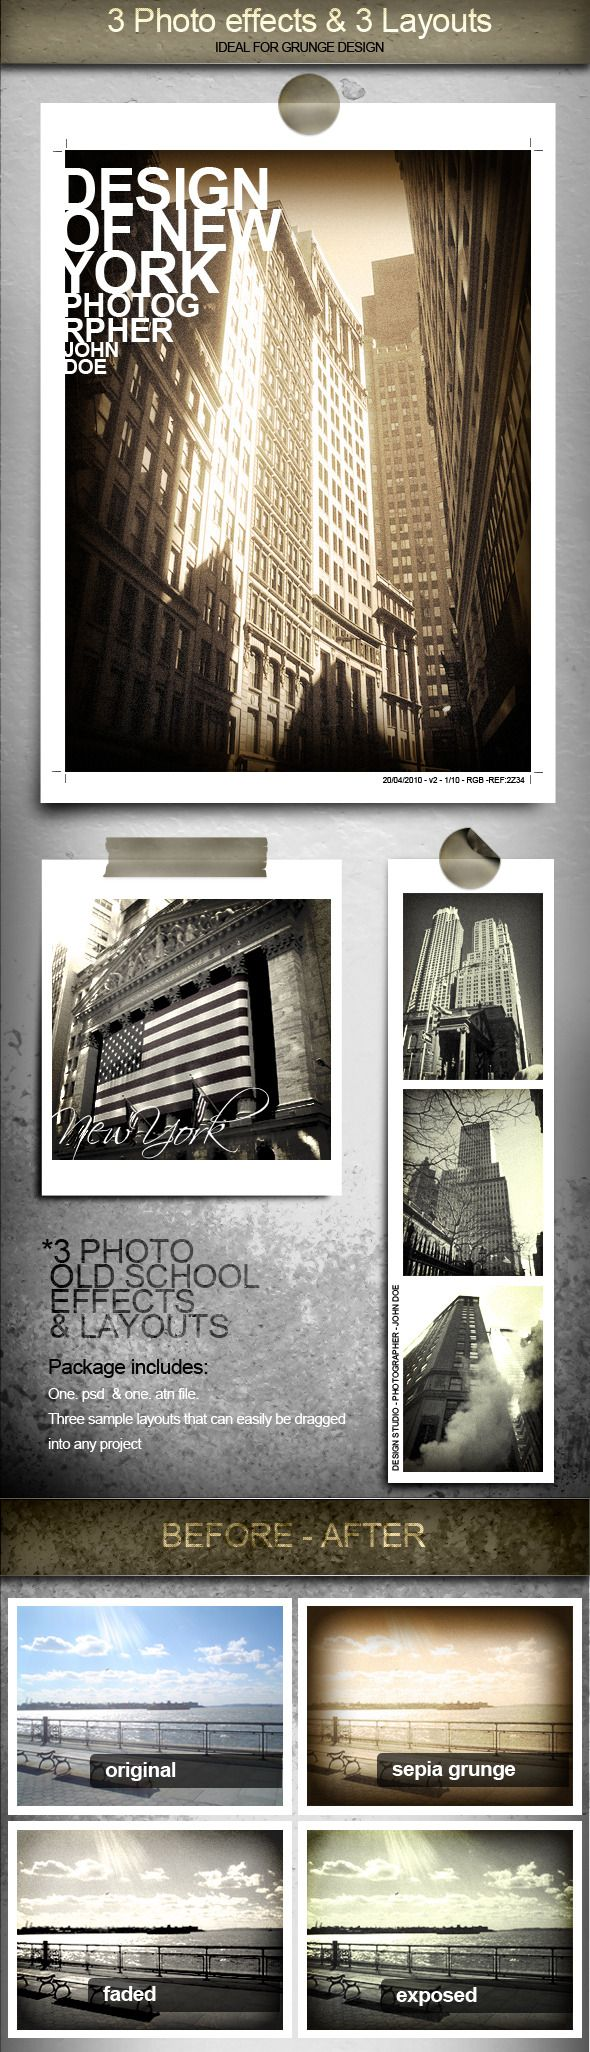 3 Cool Photo Effects and Layouts